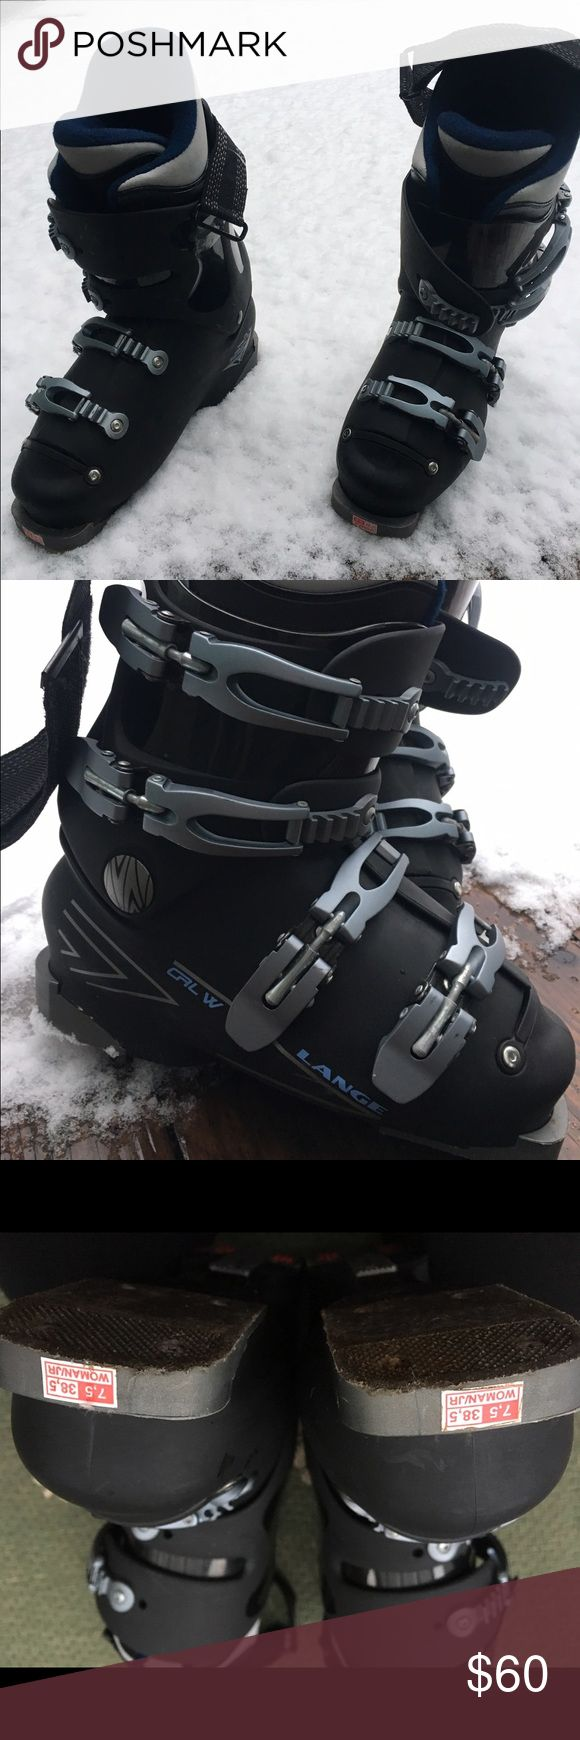 Lange women's intermediate/beginner ski boot Navy/black intermediate ski boot only worn 2-3x boot is a 7.5 but fits like a 6.5 great for a narrow heel/foot. Lange  Shoes Winter & Rain Boots